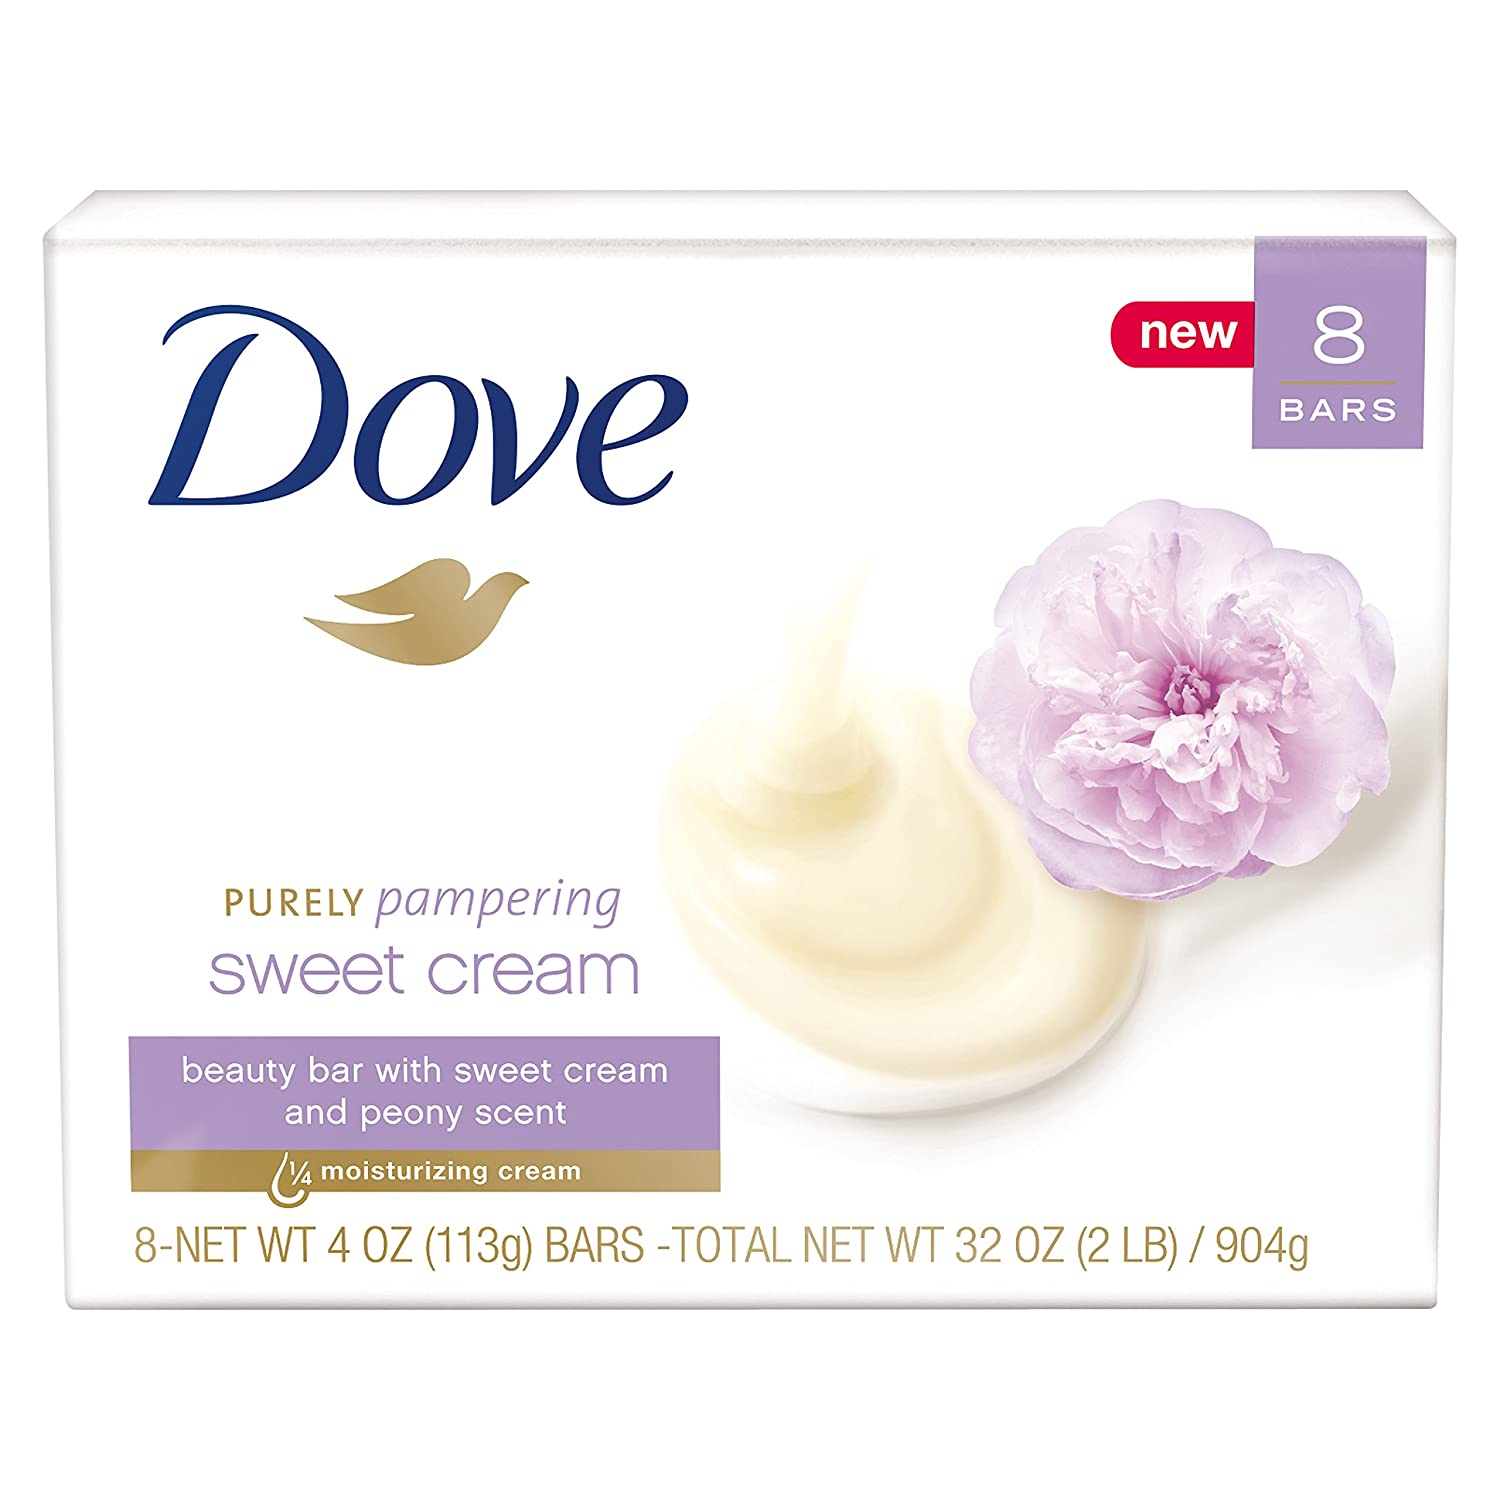 Dove Purely Pampering Beauty Bar, Sweet Cream & Peony, 4 oz, 8 Bar